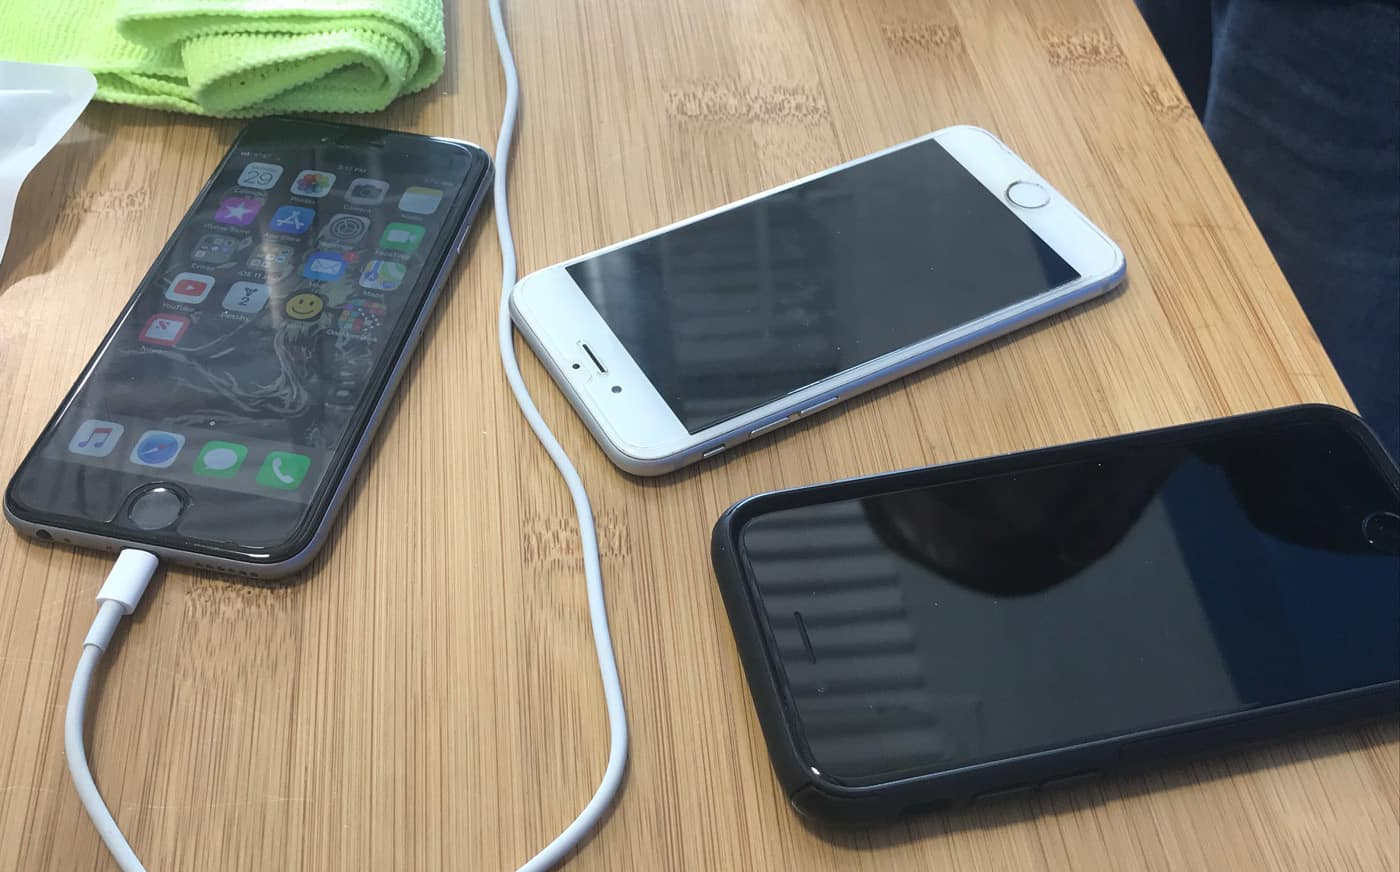 iphones on desk transferring data